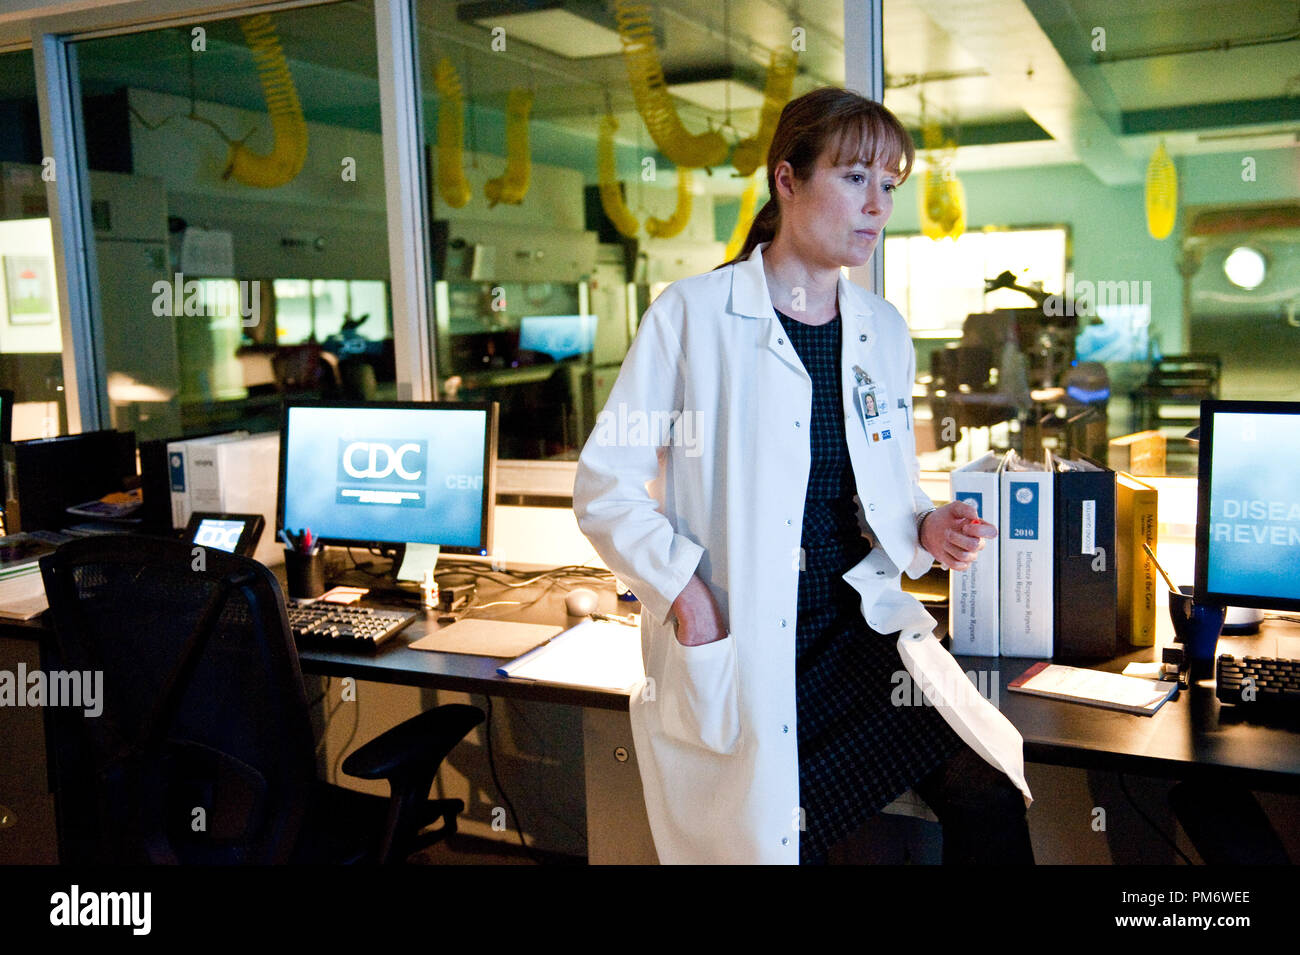 Jennifer Ehle As Dr Ally Hextall In The Thriller Contagion A Warner Bros Pictures Release Stock Photo Alamy